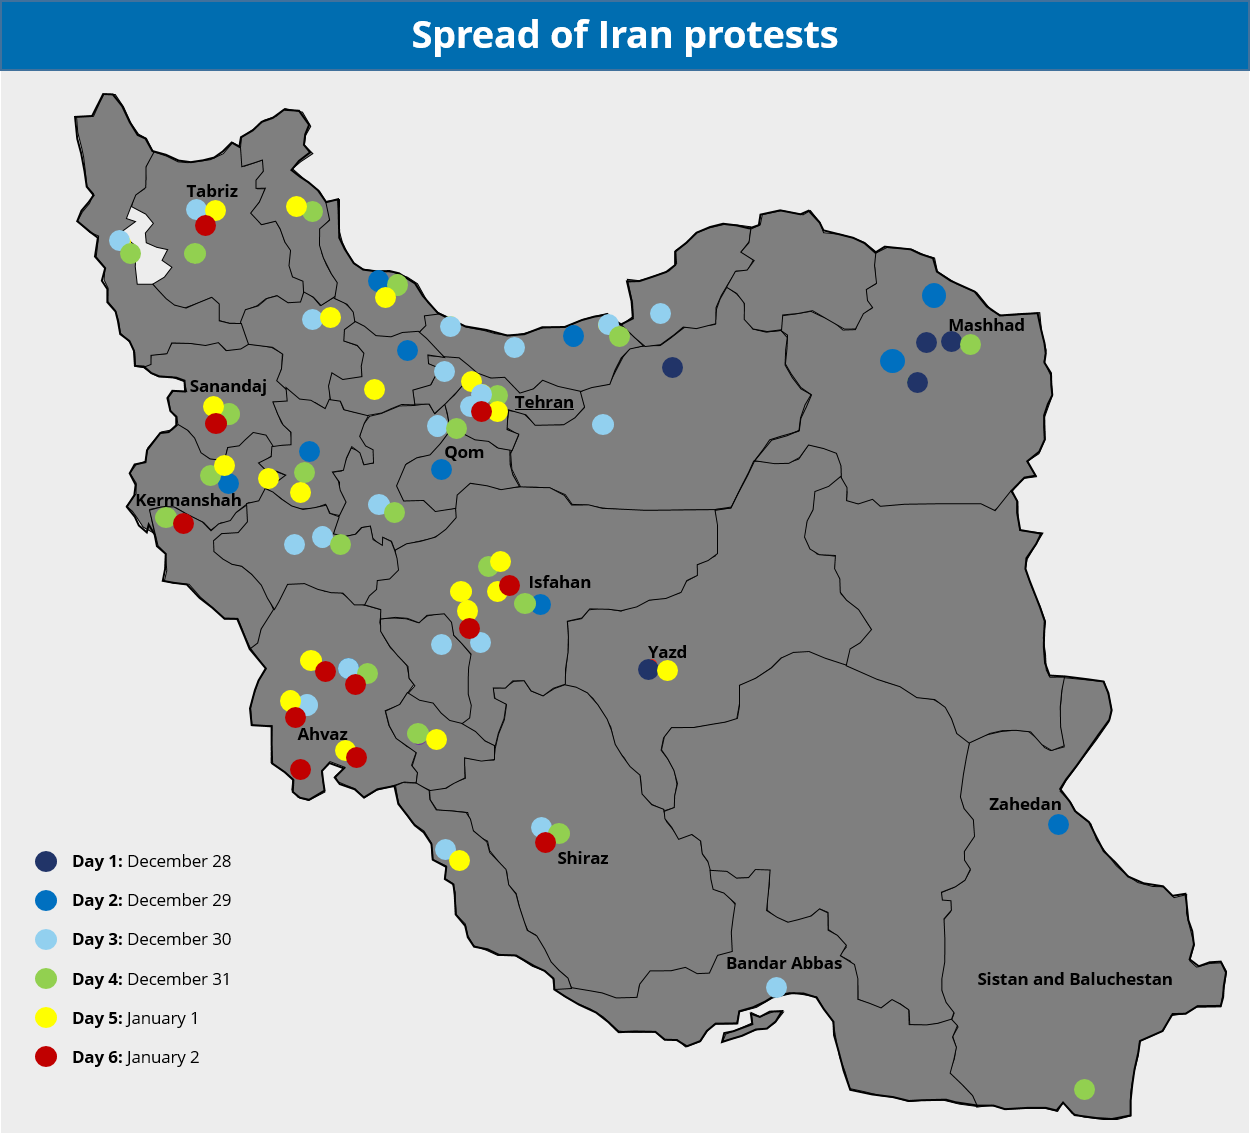 Widespread unrest reflects discontent with Rouhani's economic policies, money spent in regional conflict; protests likely to subside - Iran Analysis | MAX Security